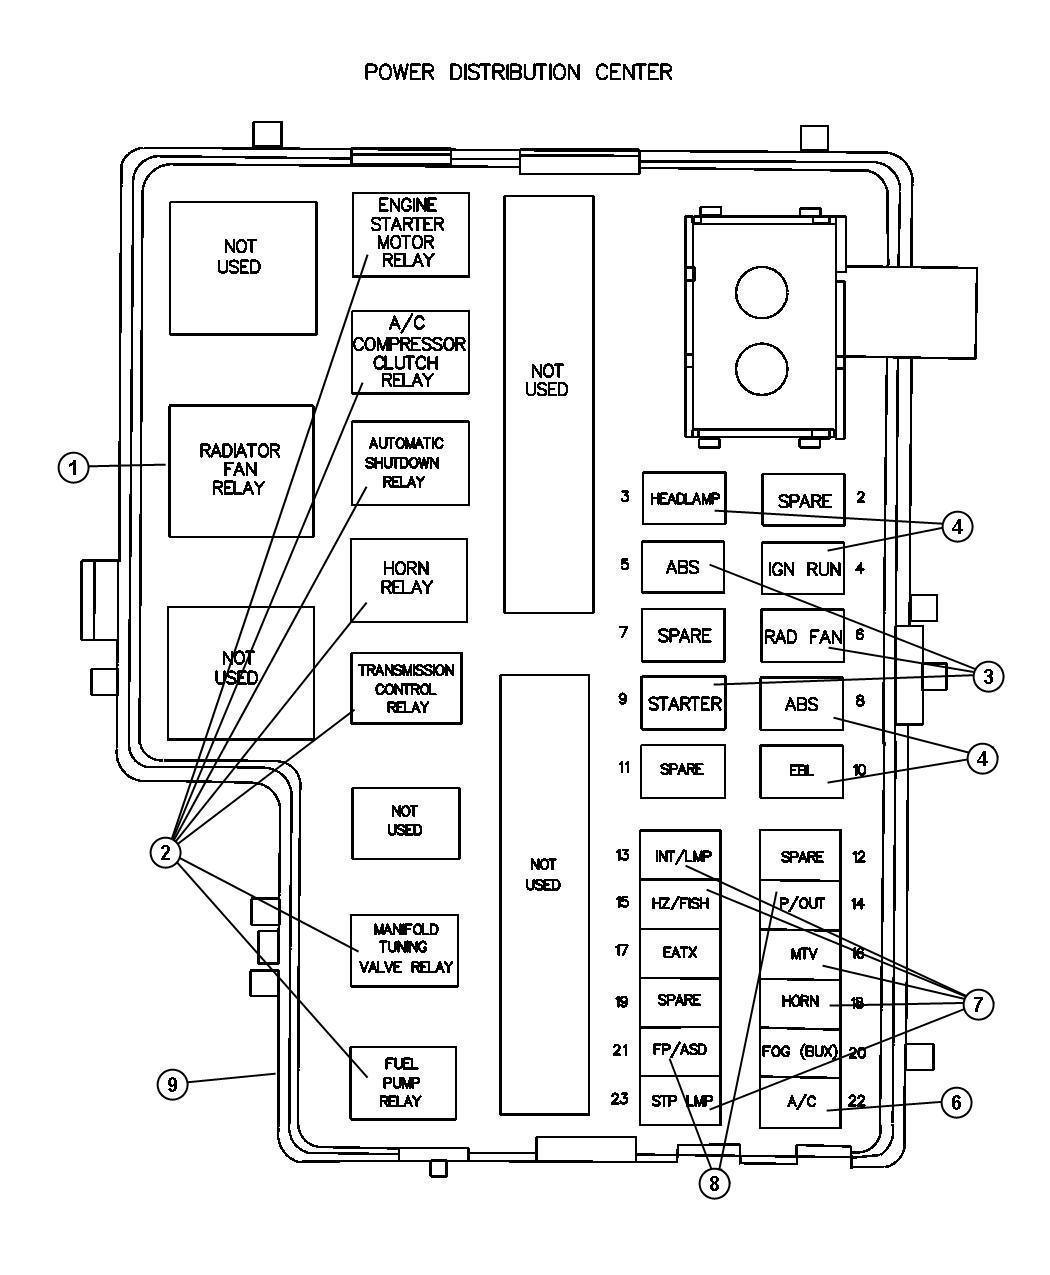 2001 Dodge Neon Fuse Diagram | Wiring Diagram on neon walls, neon kitchen, neon glass, neon transformers, neon pumps,